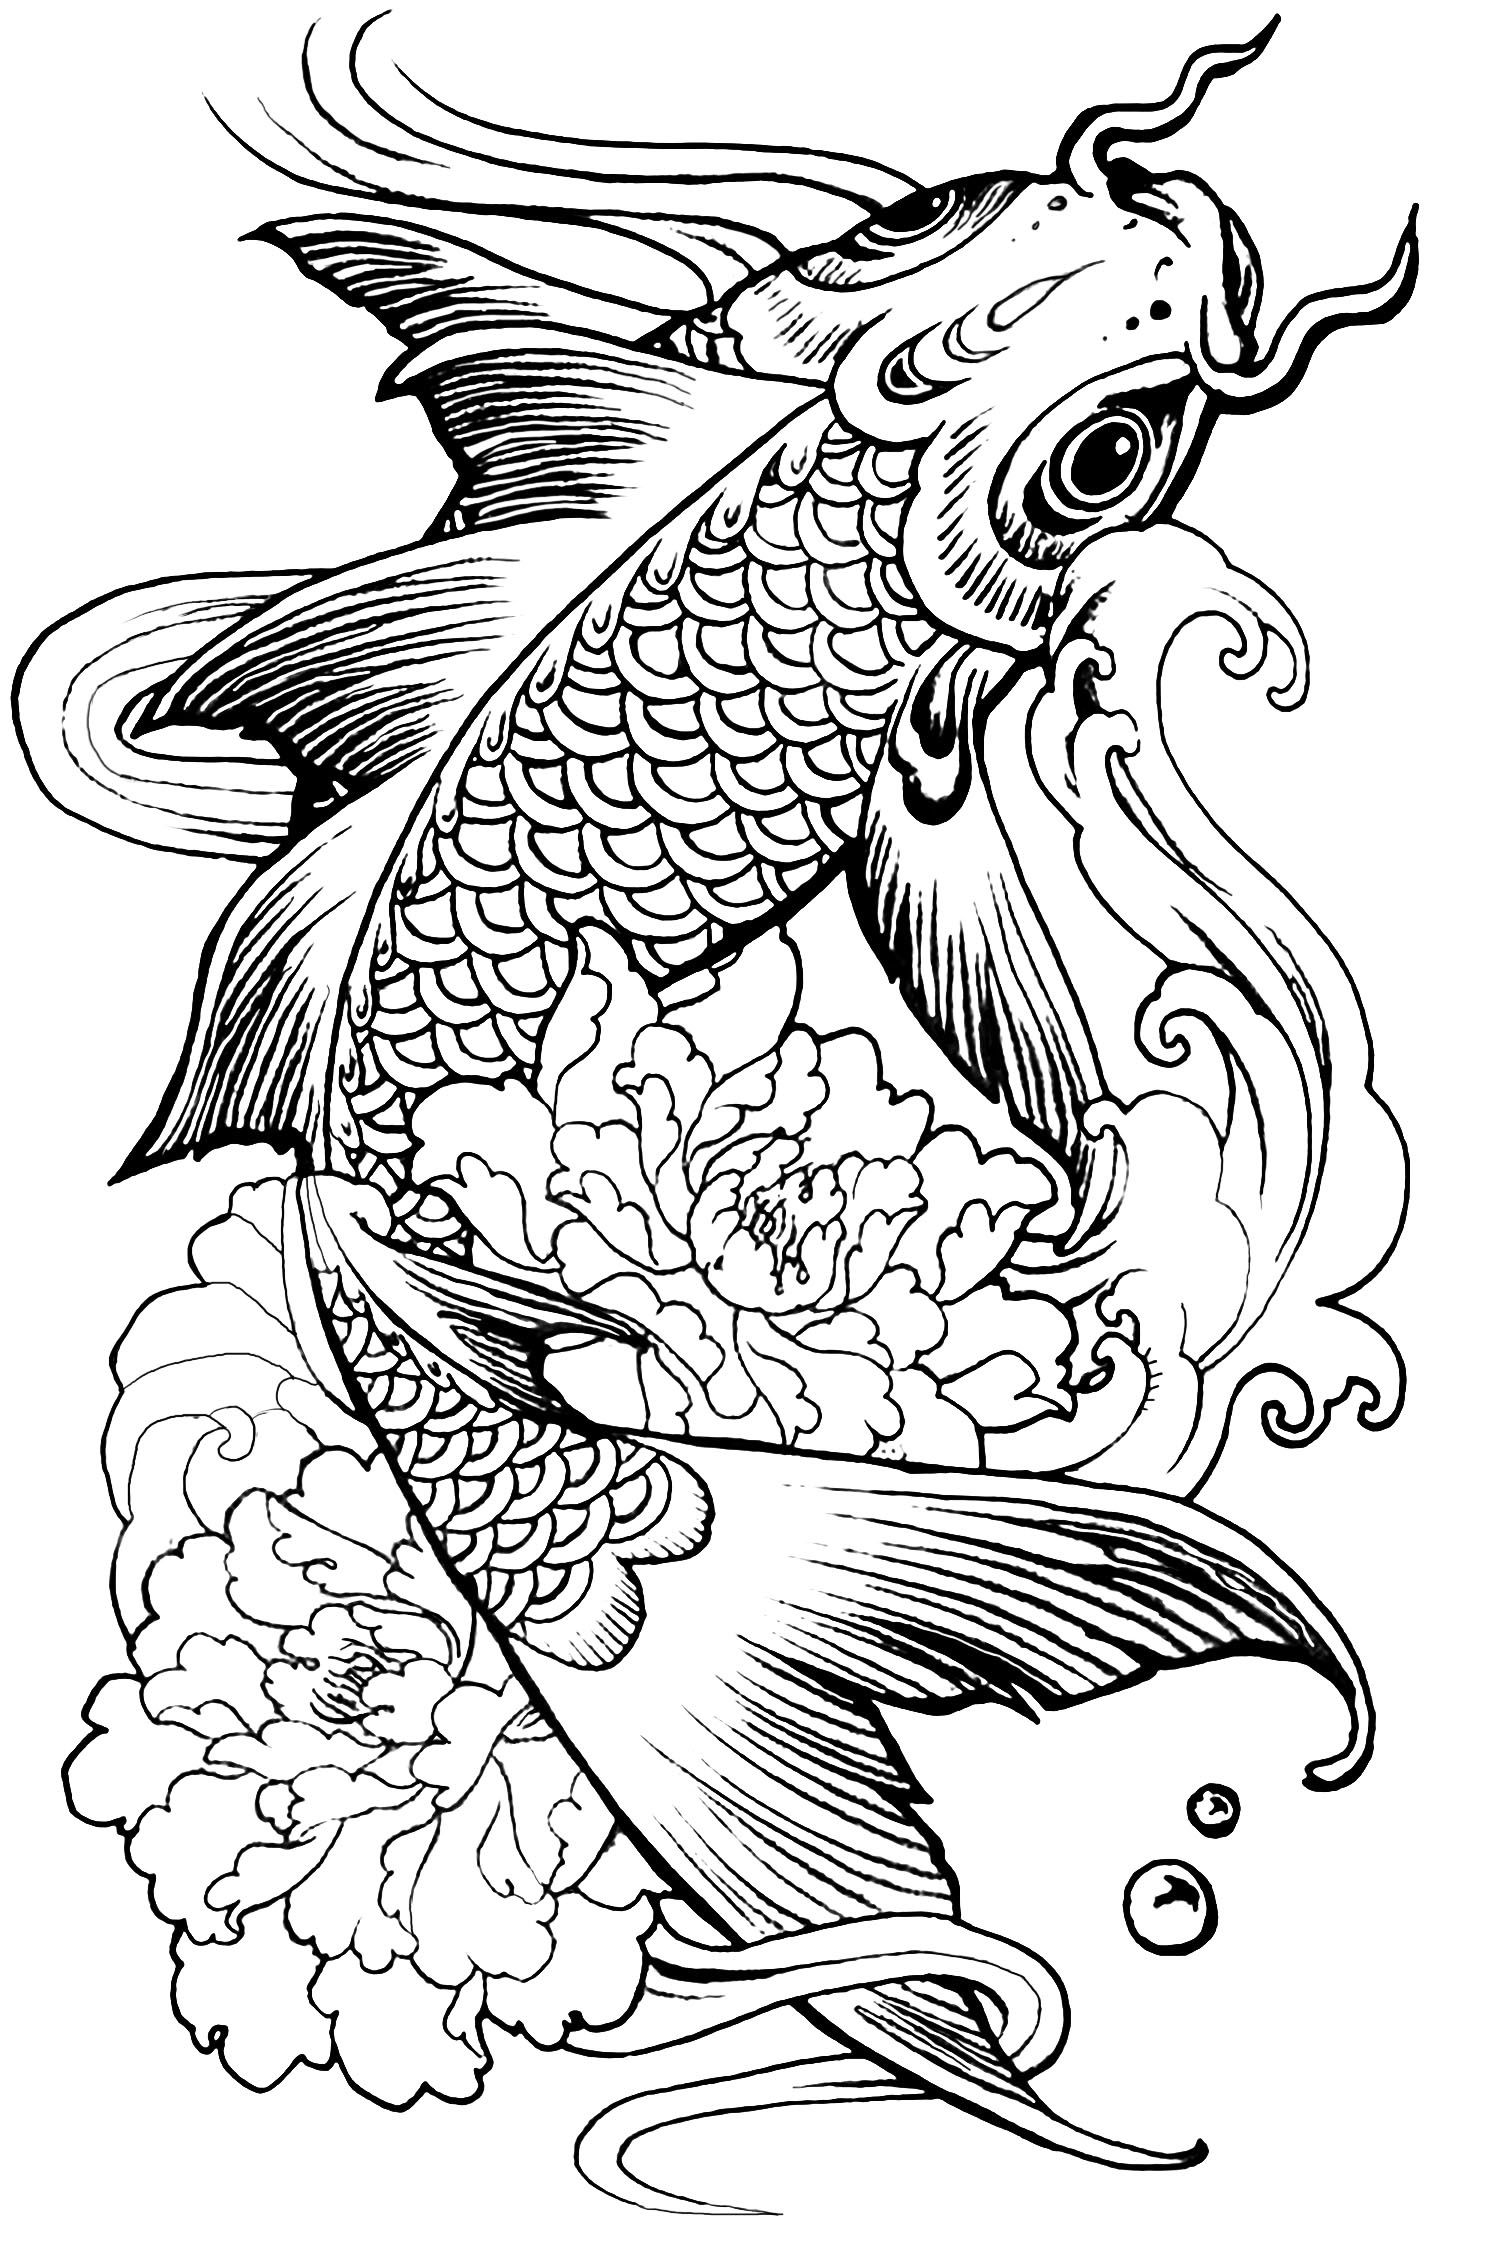 Complex Fish Carp Coloring Page Of A Beautiful Fish Carp Can Be